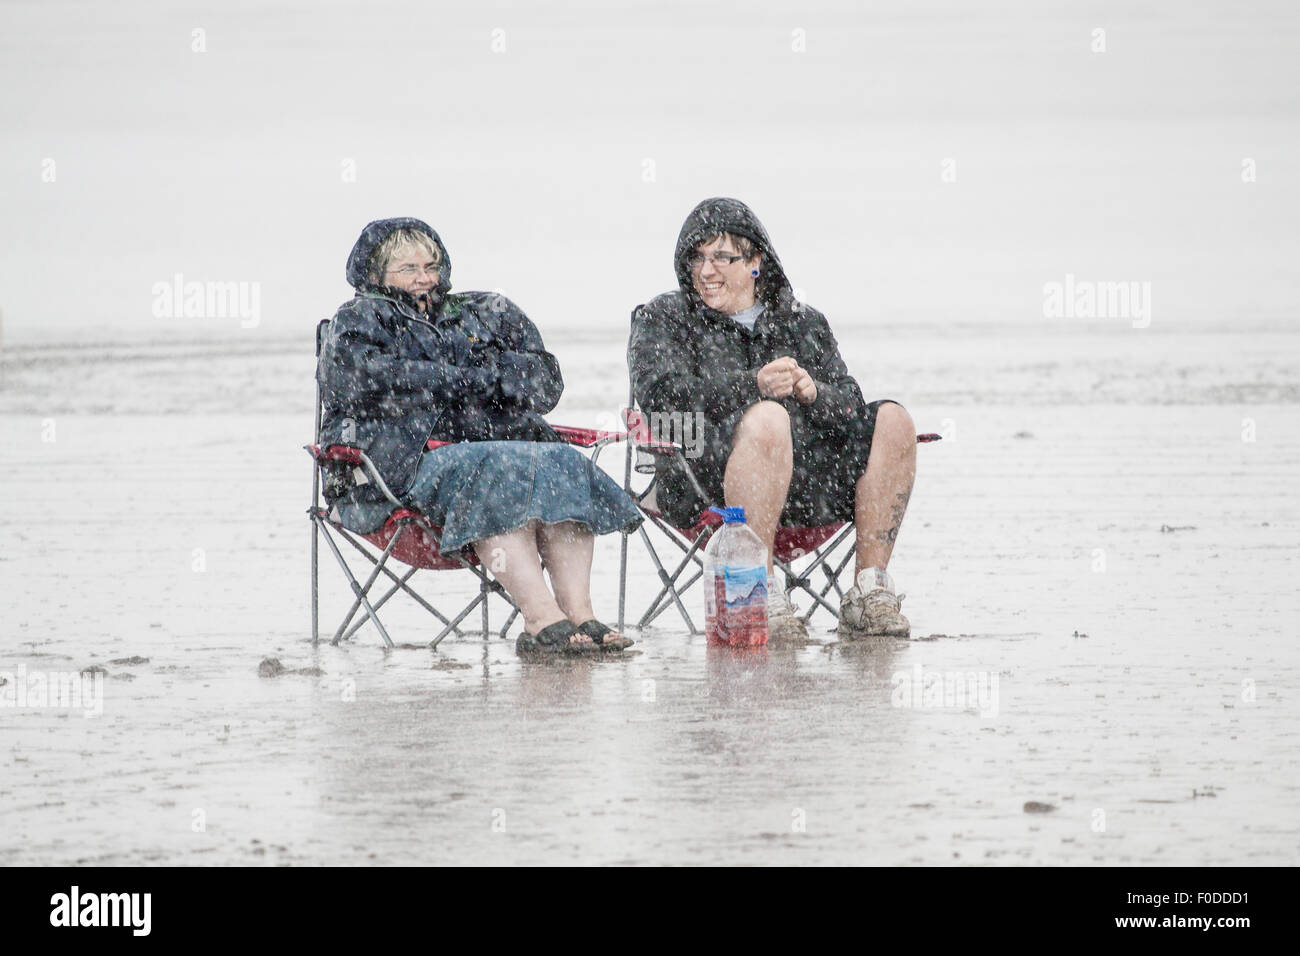 two-people-sitting-on-a-beach-in-a-rains